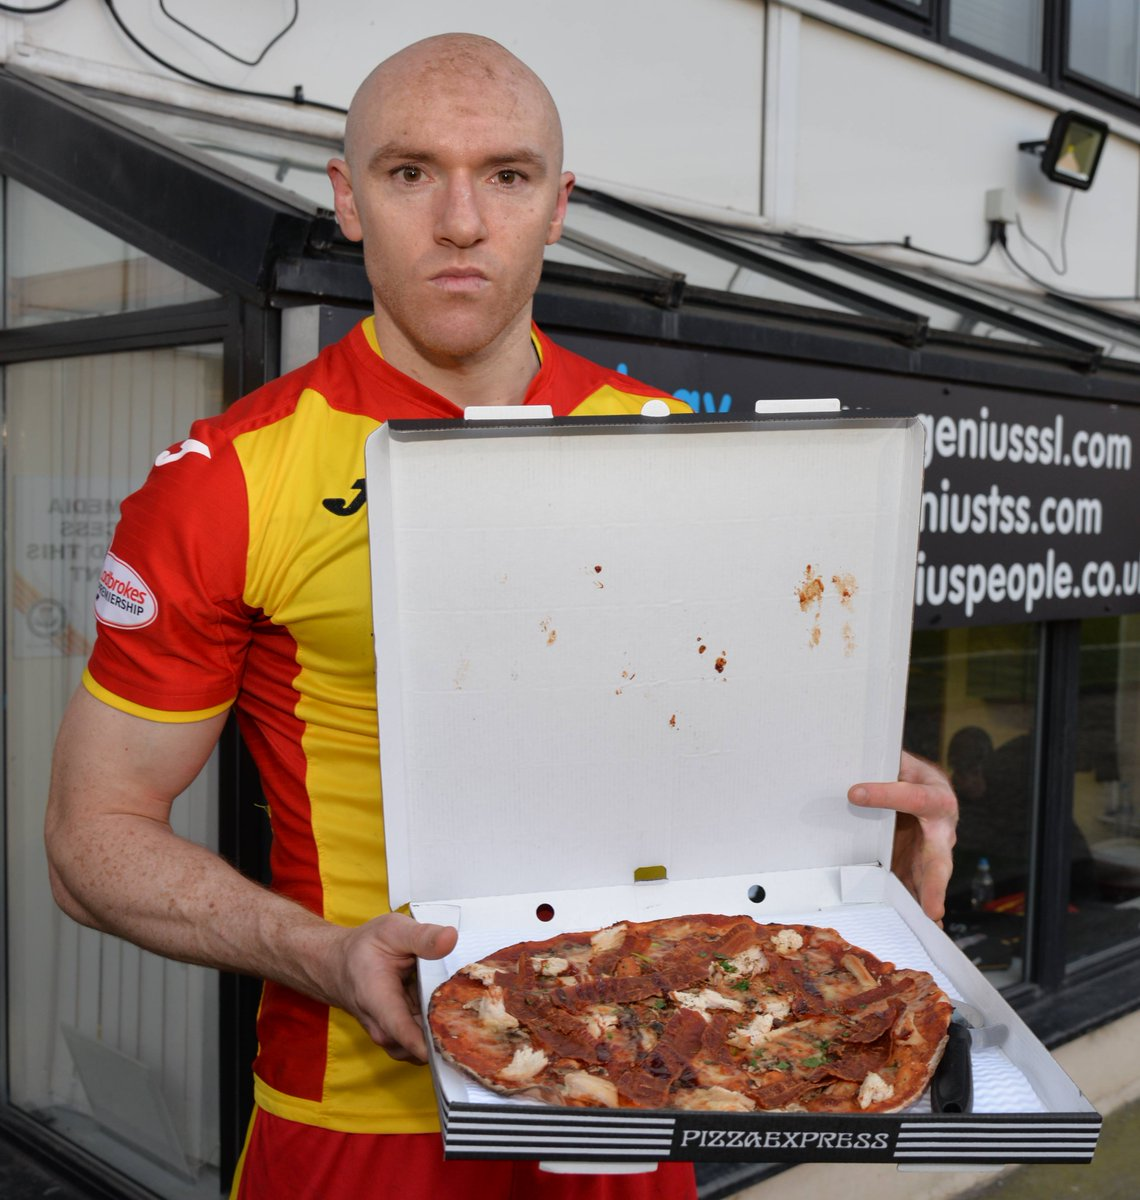 Partick Thistle Fc On Twitter Conor Sammon Received His